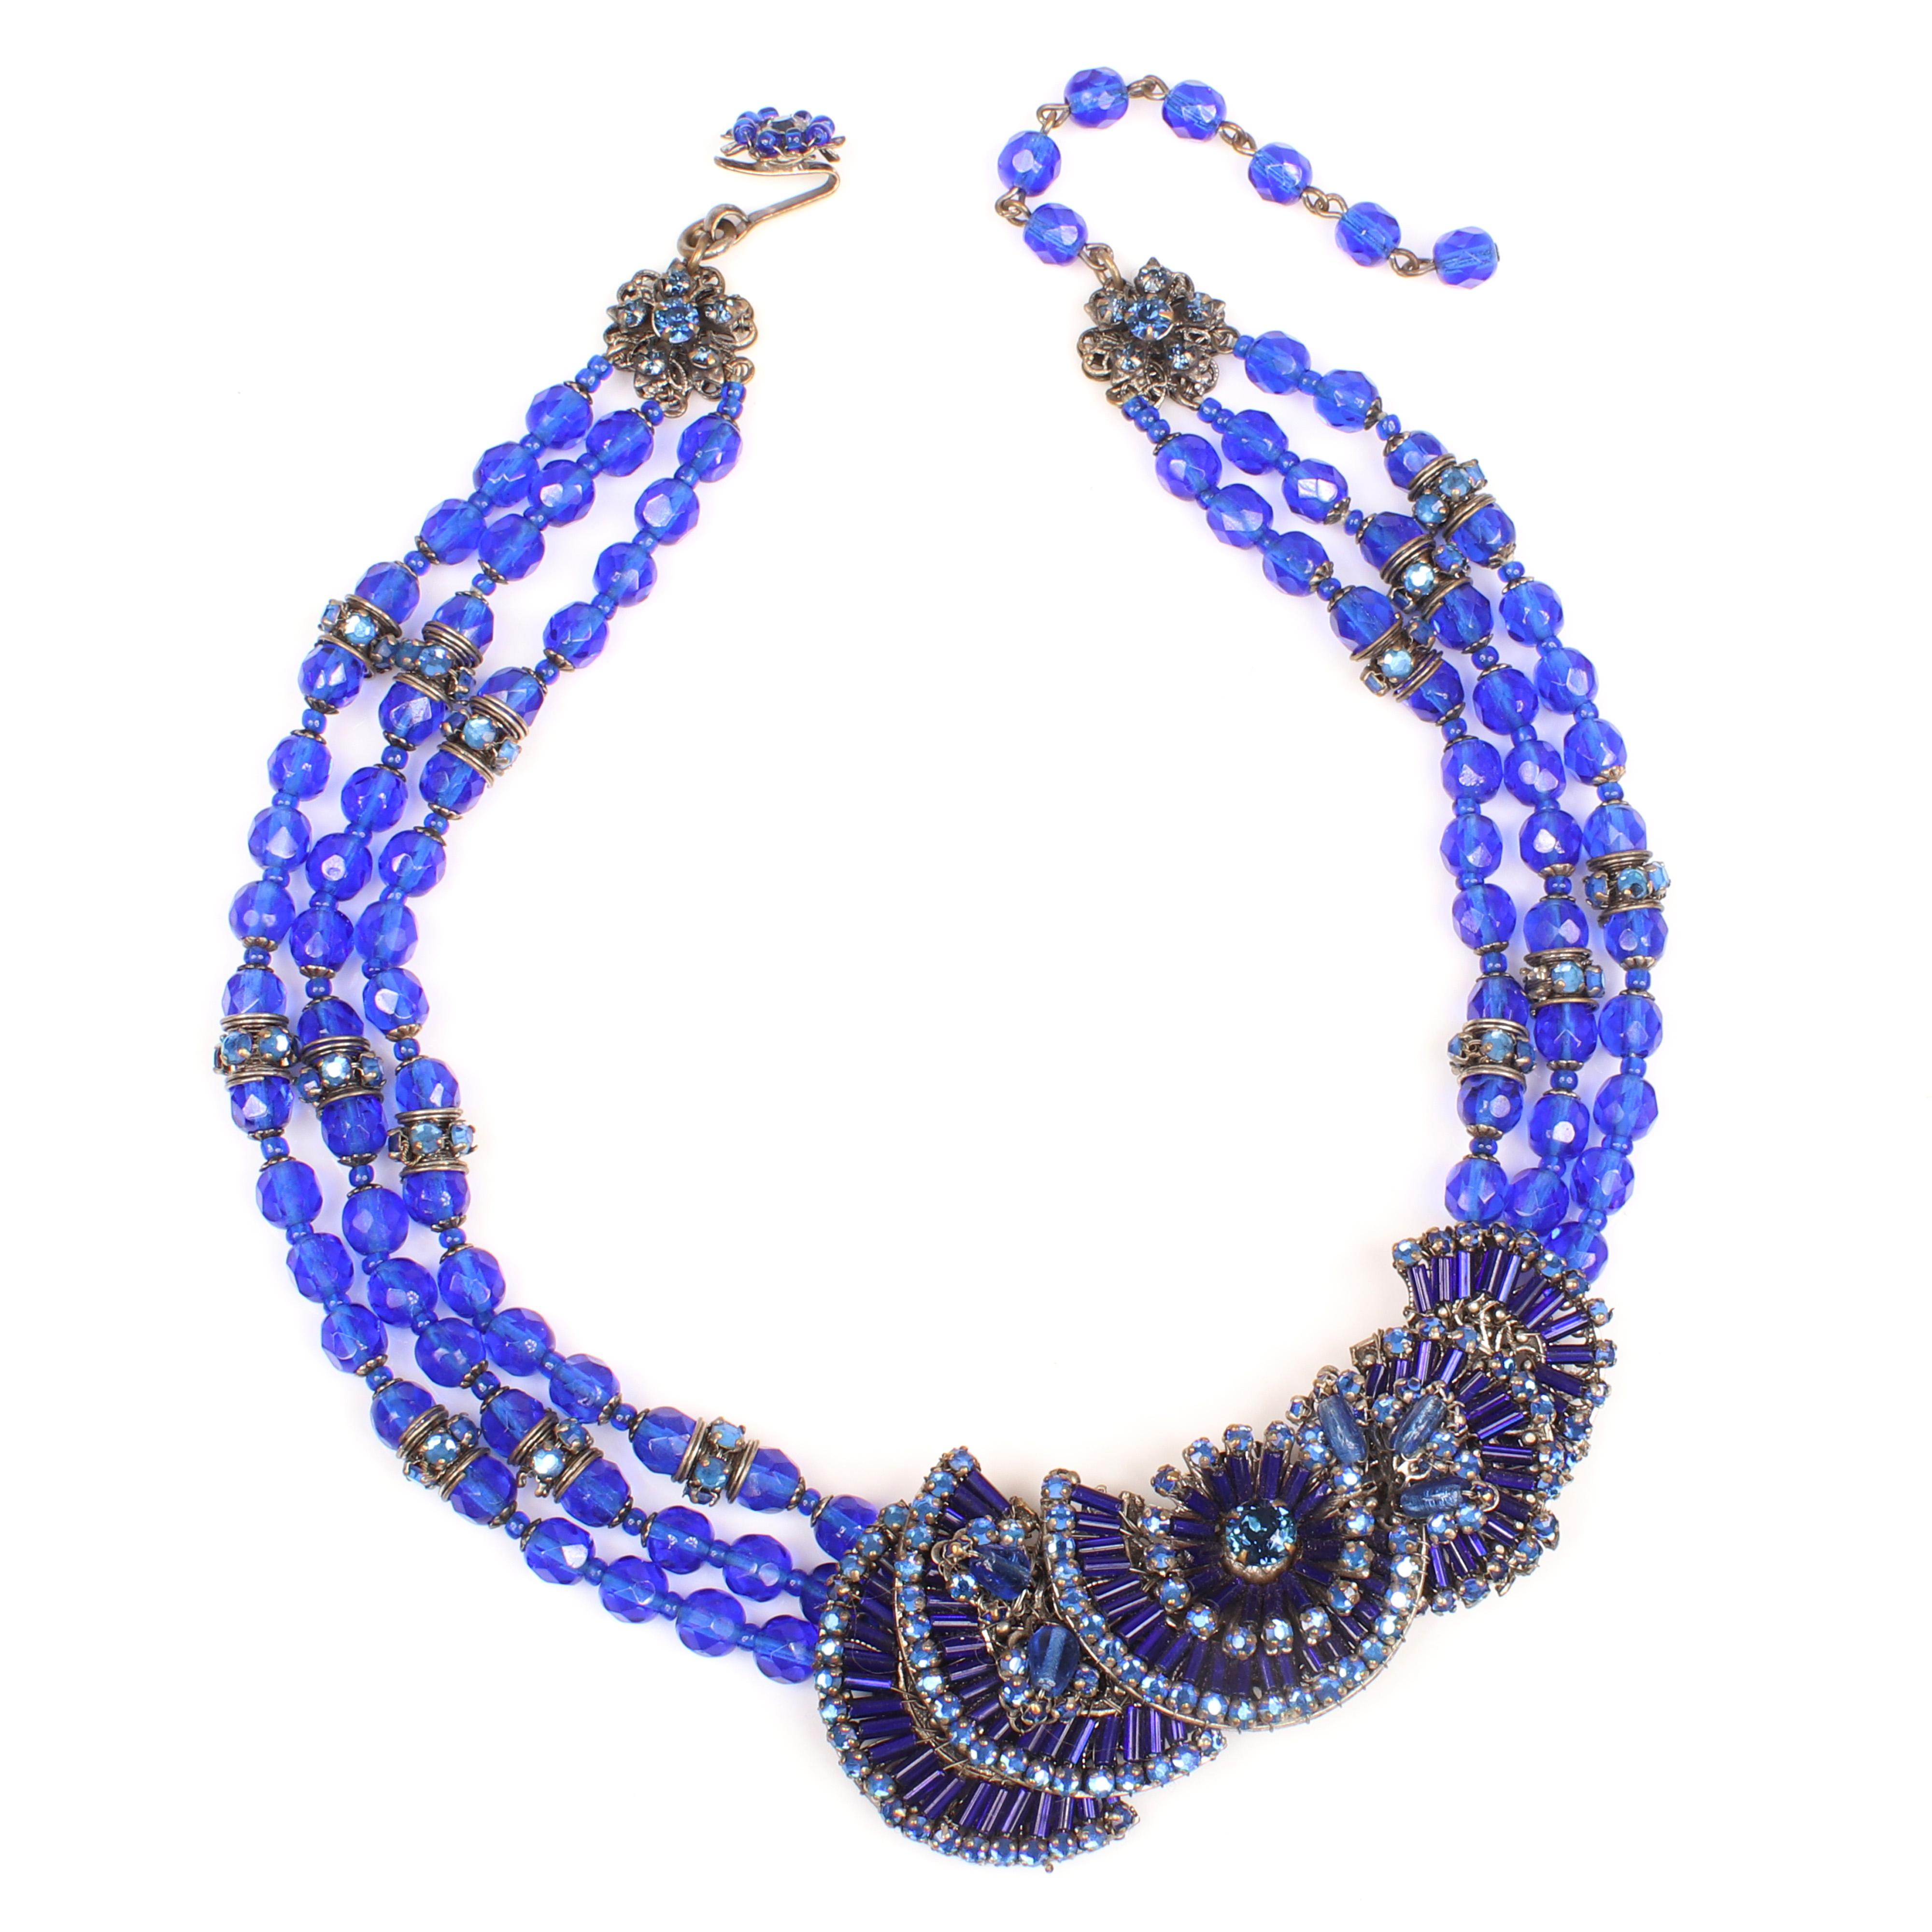 Miriam Haskell triple strand necklace with blue glass beads, rondelles and layered fan flourish.